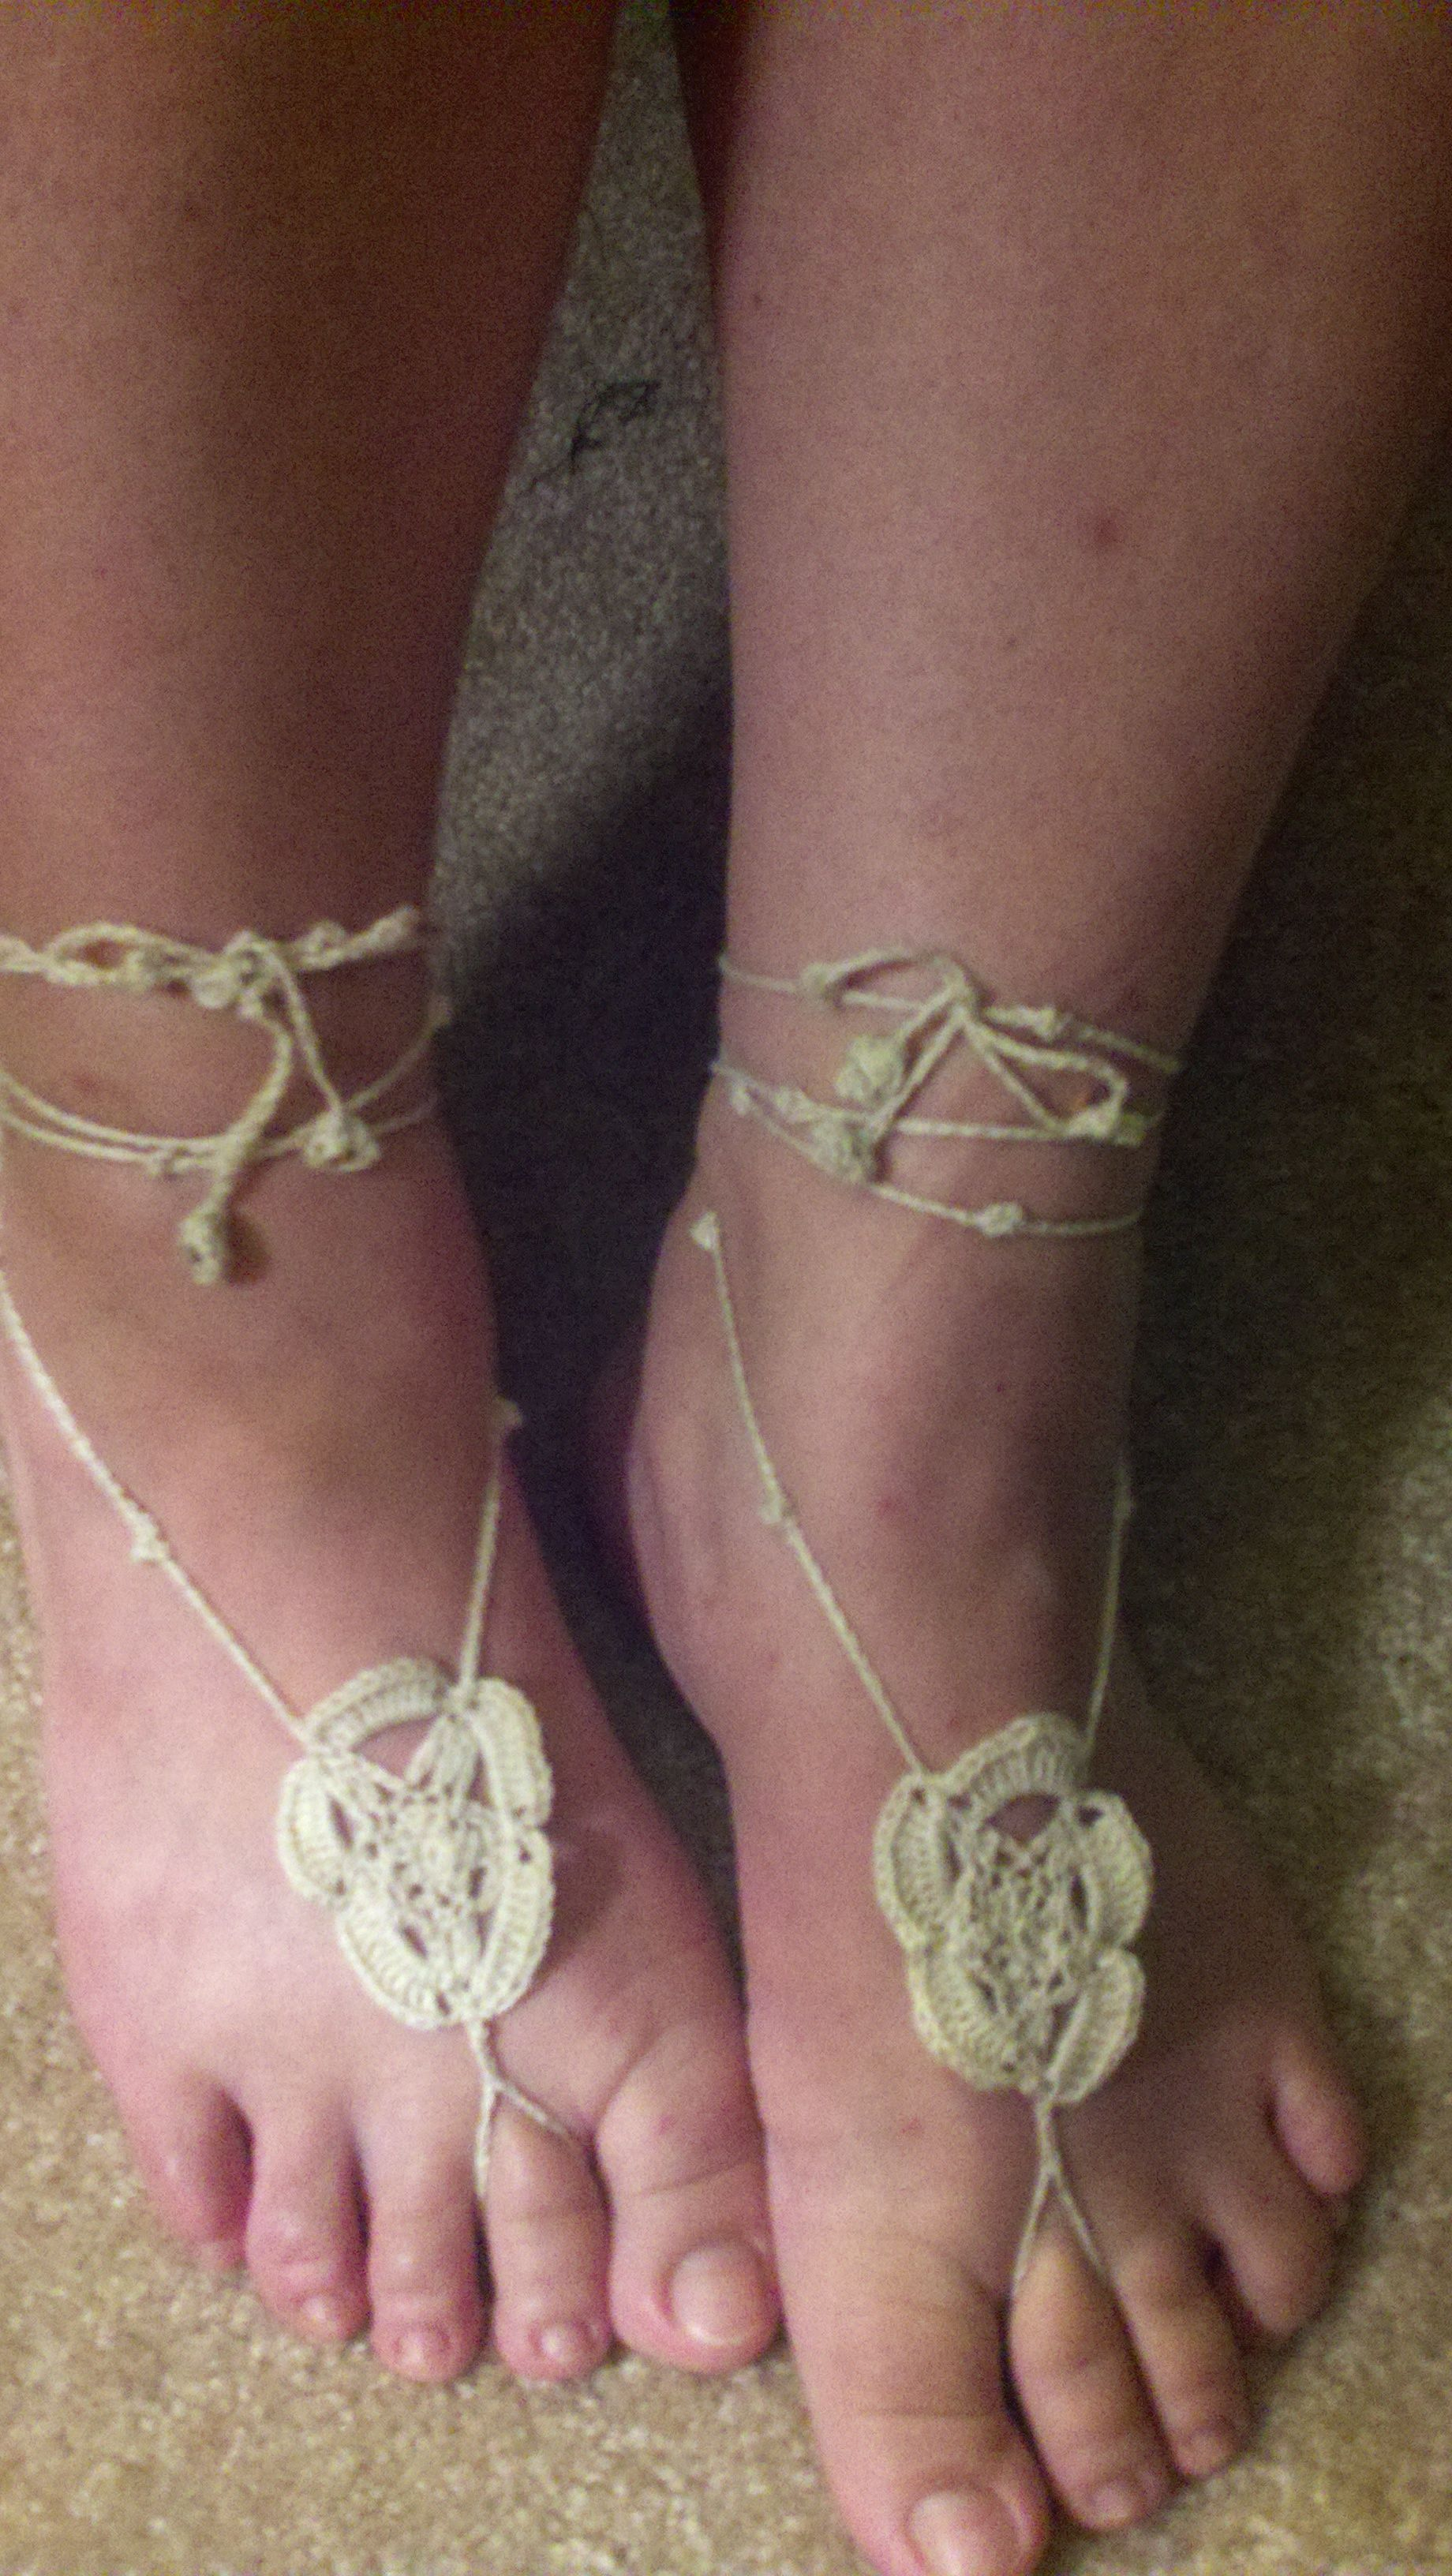 'A Star is Born' My first barefoot sandal design.